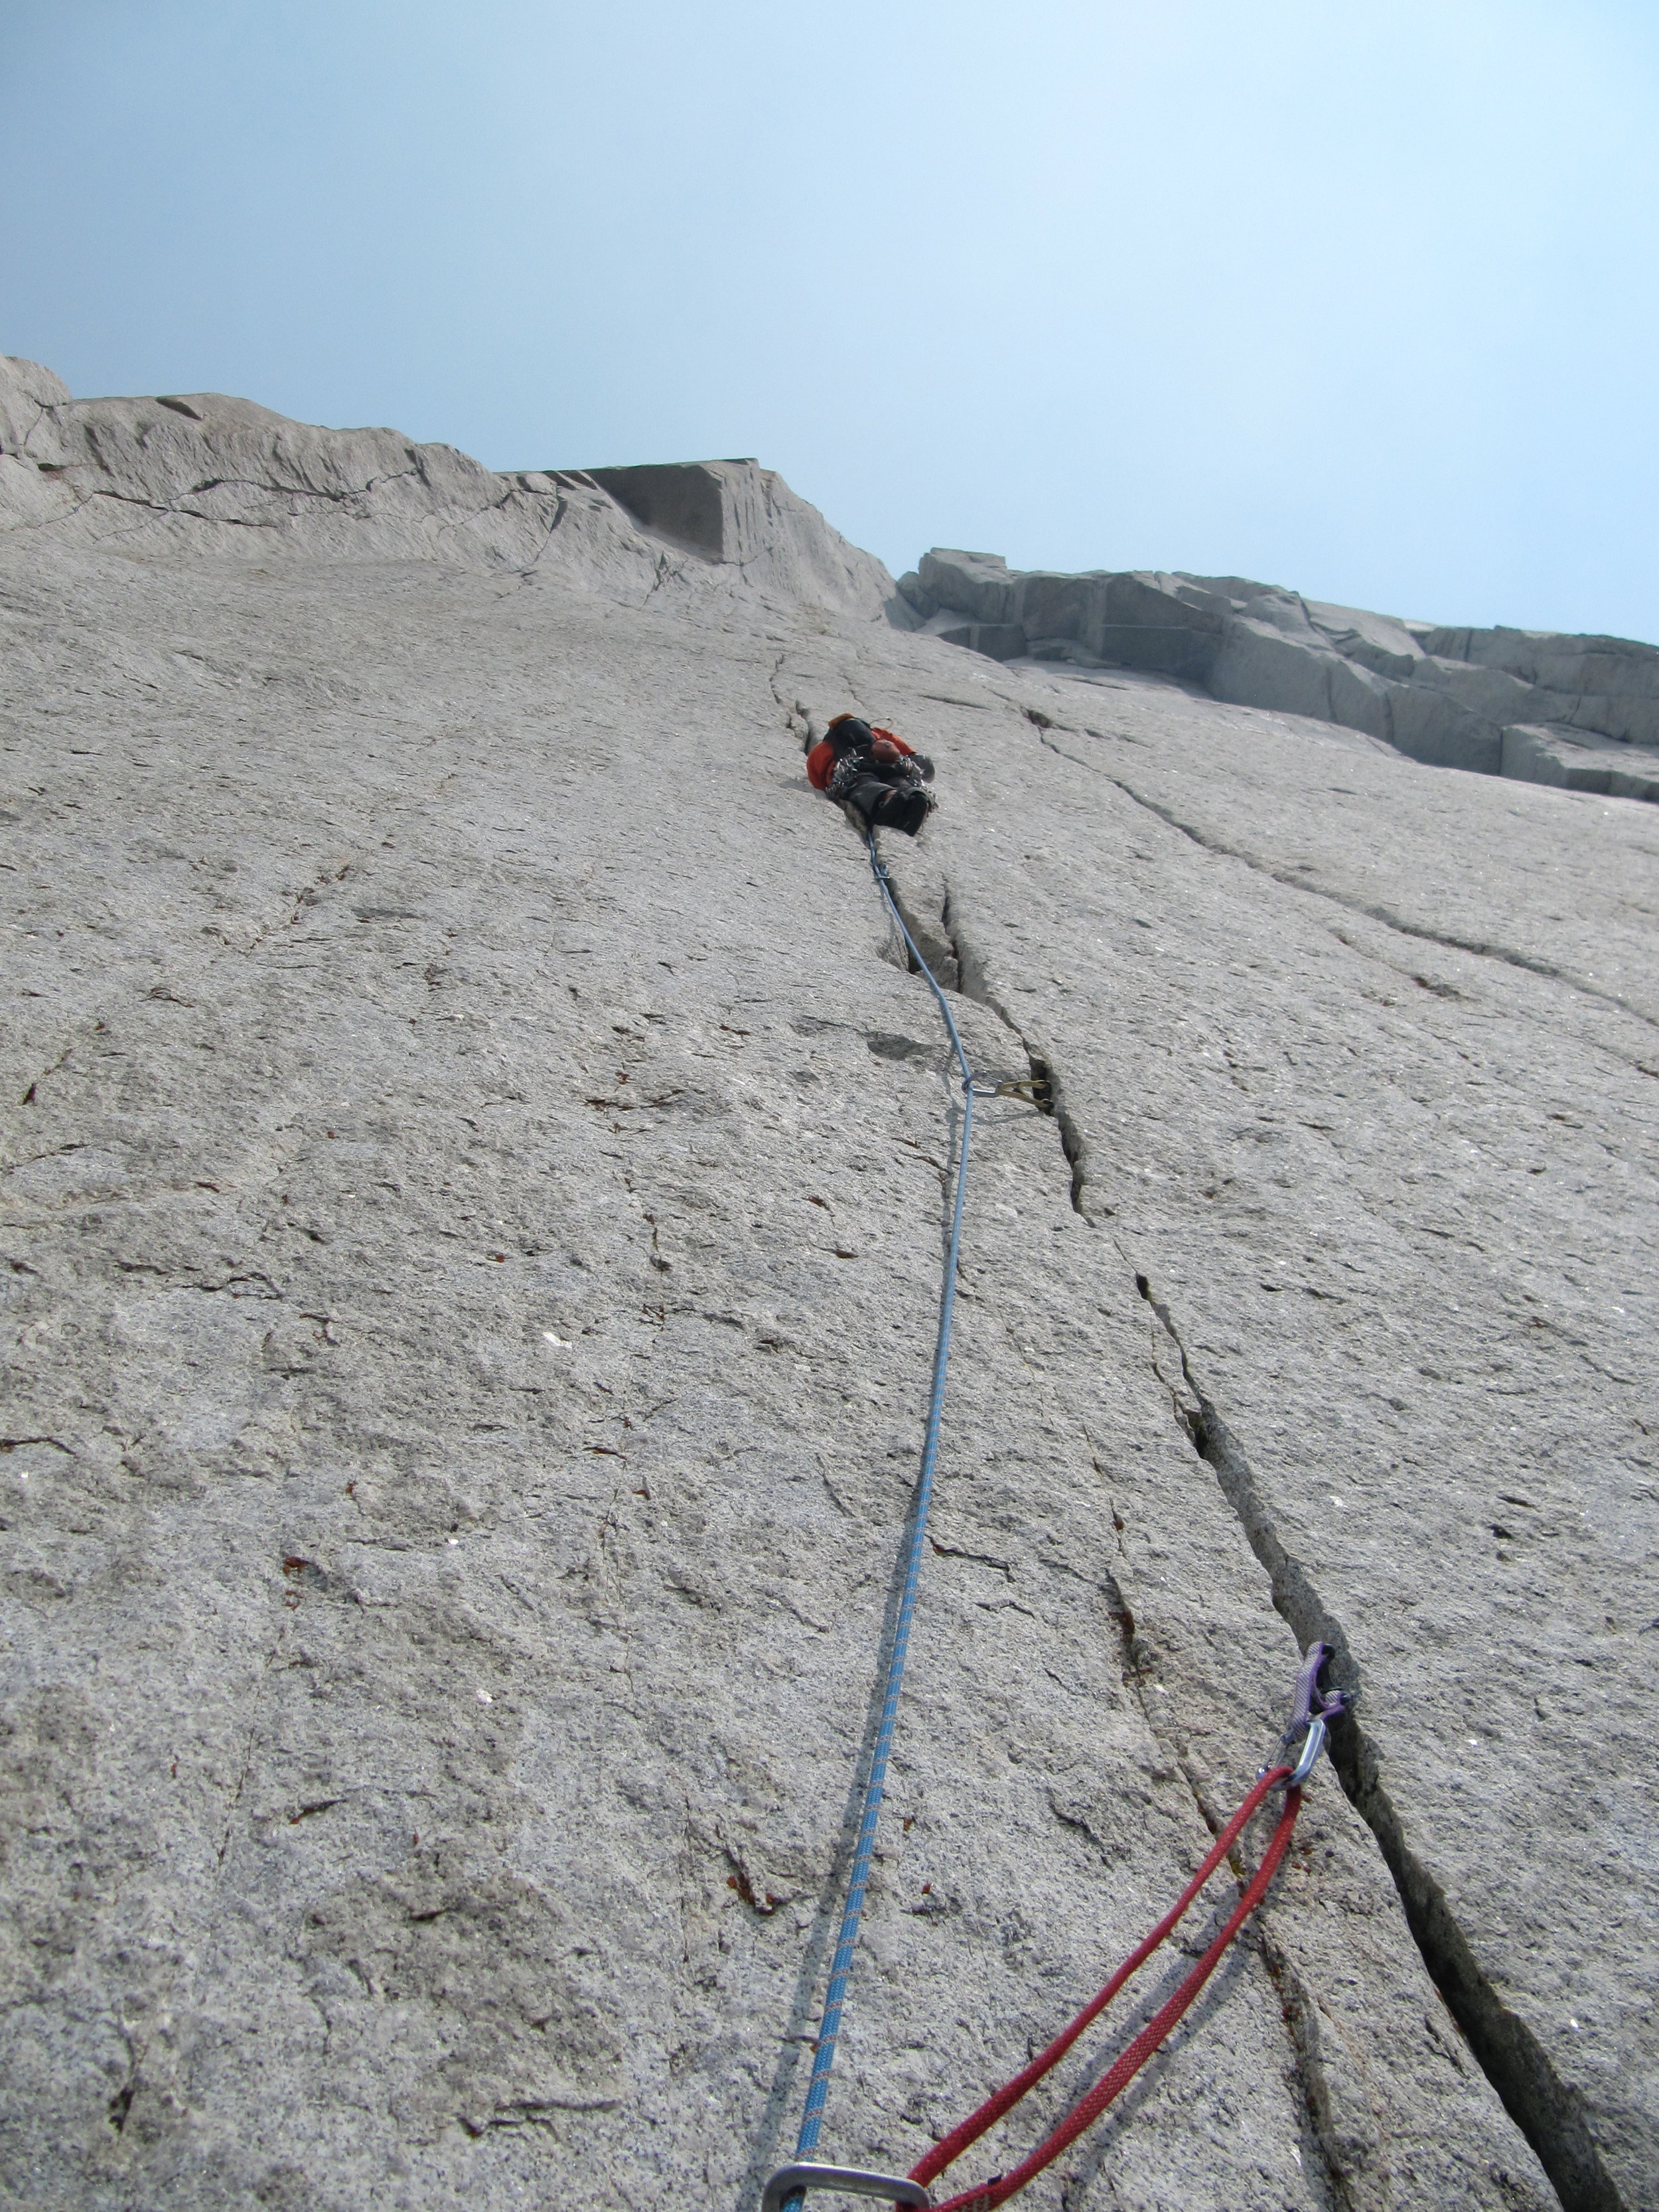 Mike leading pitch 8, miles of amazing finger crack!